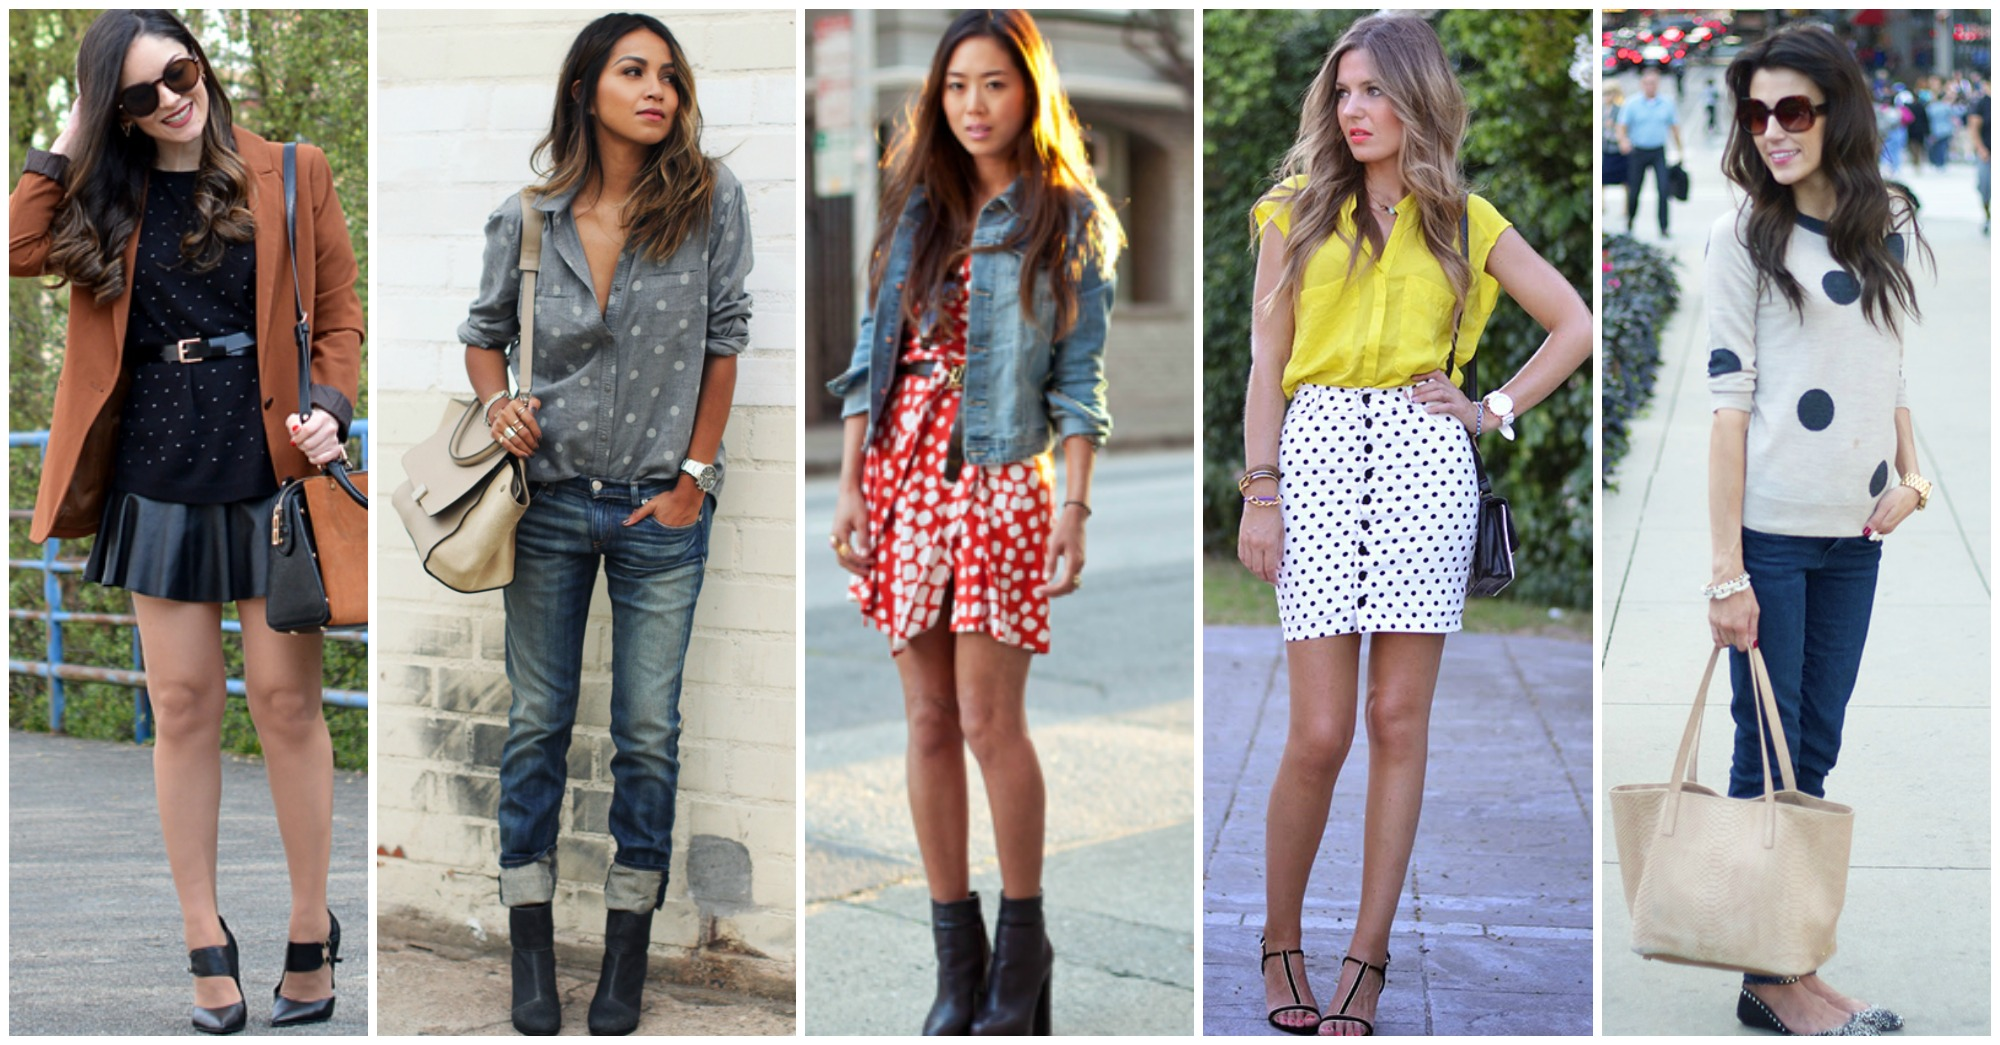 15 Fashionable Ideas of How to Wear Polka Dots This Spring